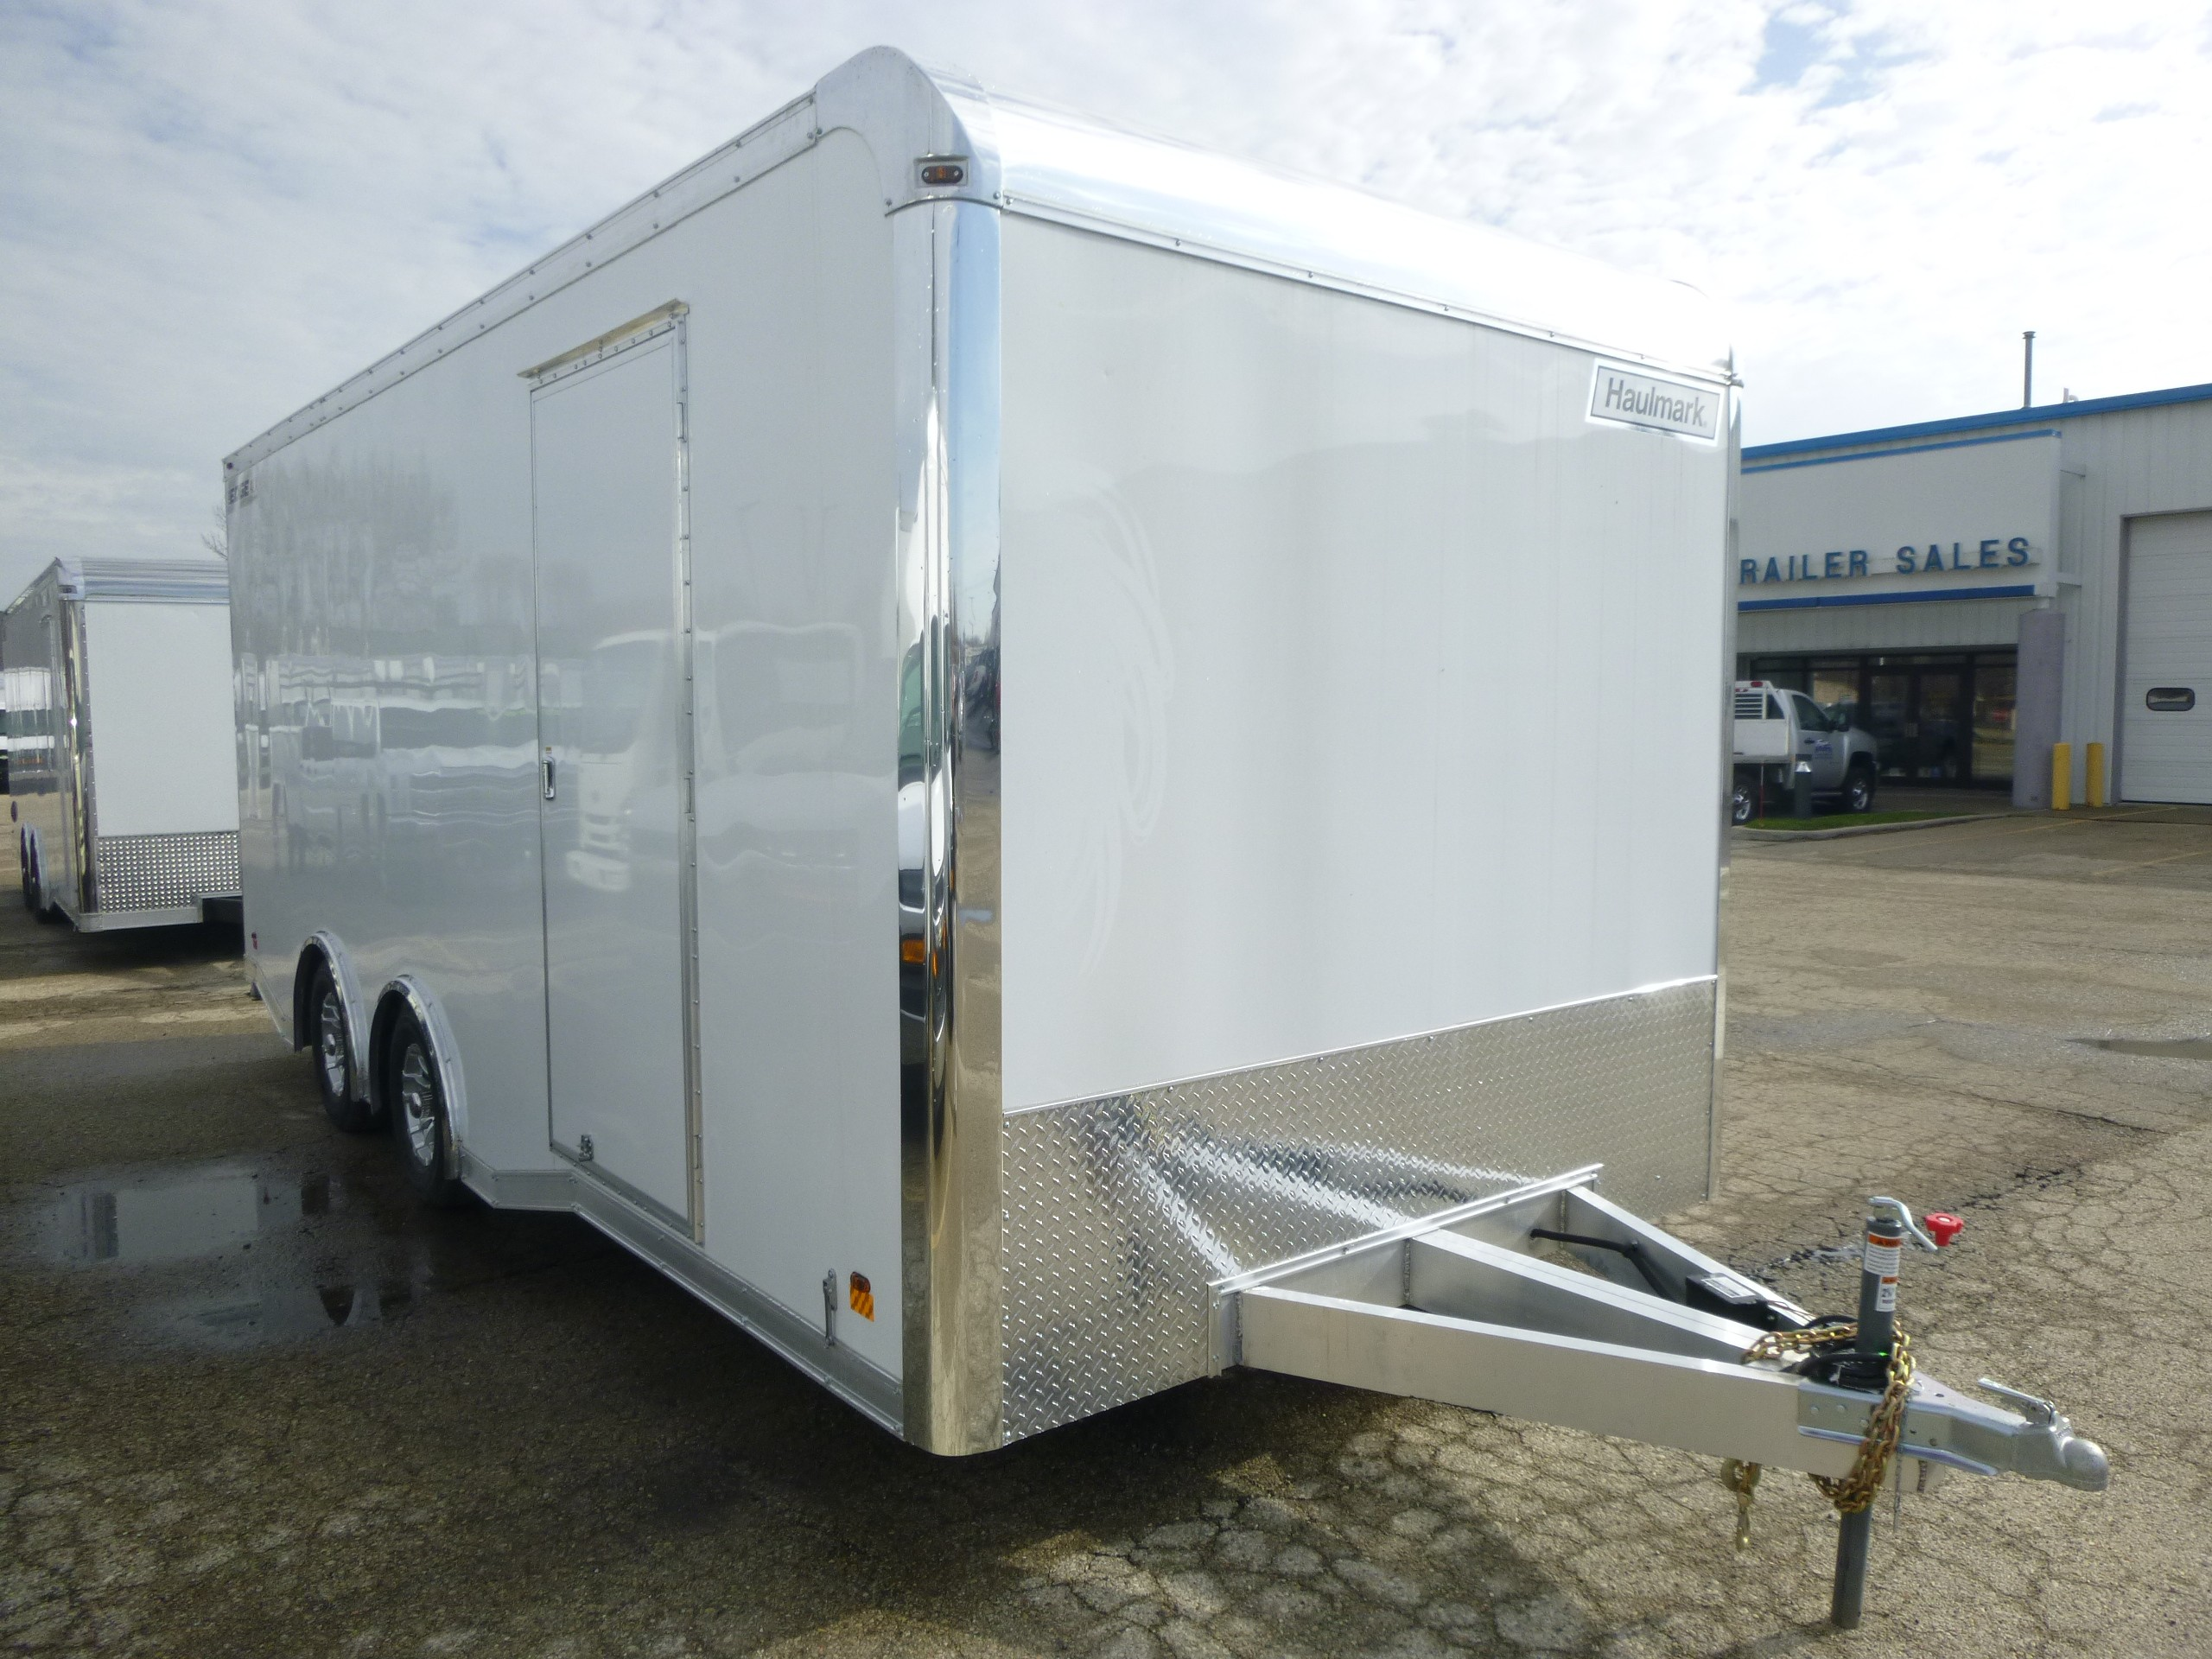 New, 2019, Haulmark, Edge Aluminum 8'6 x 20' Car Hauler, Trailers